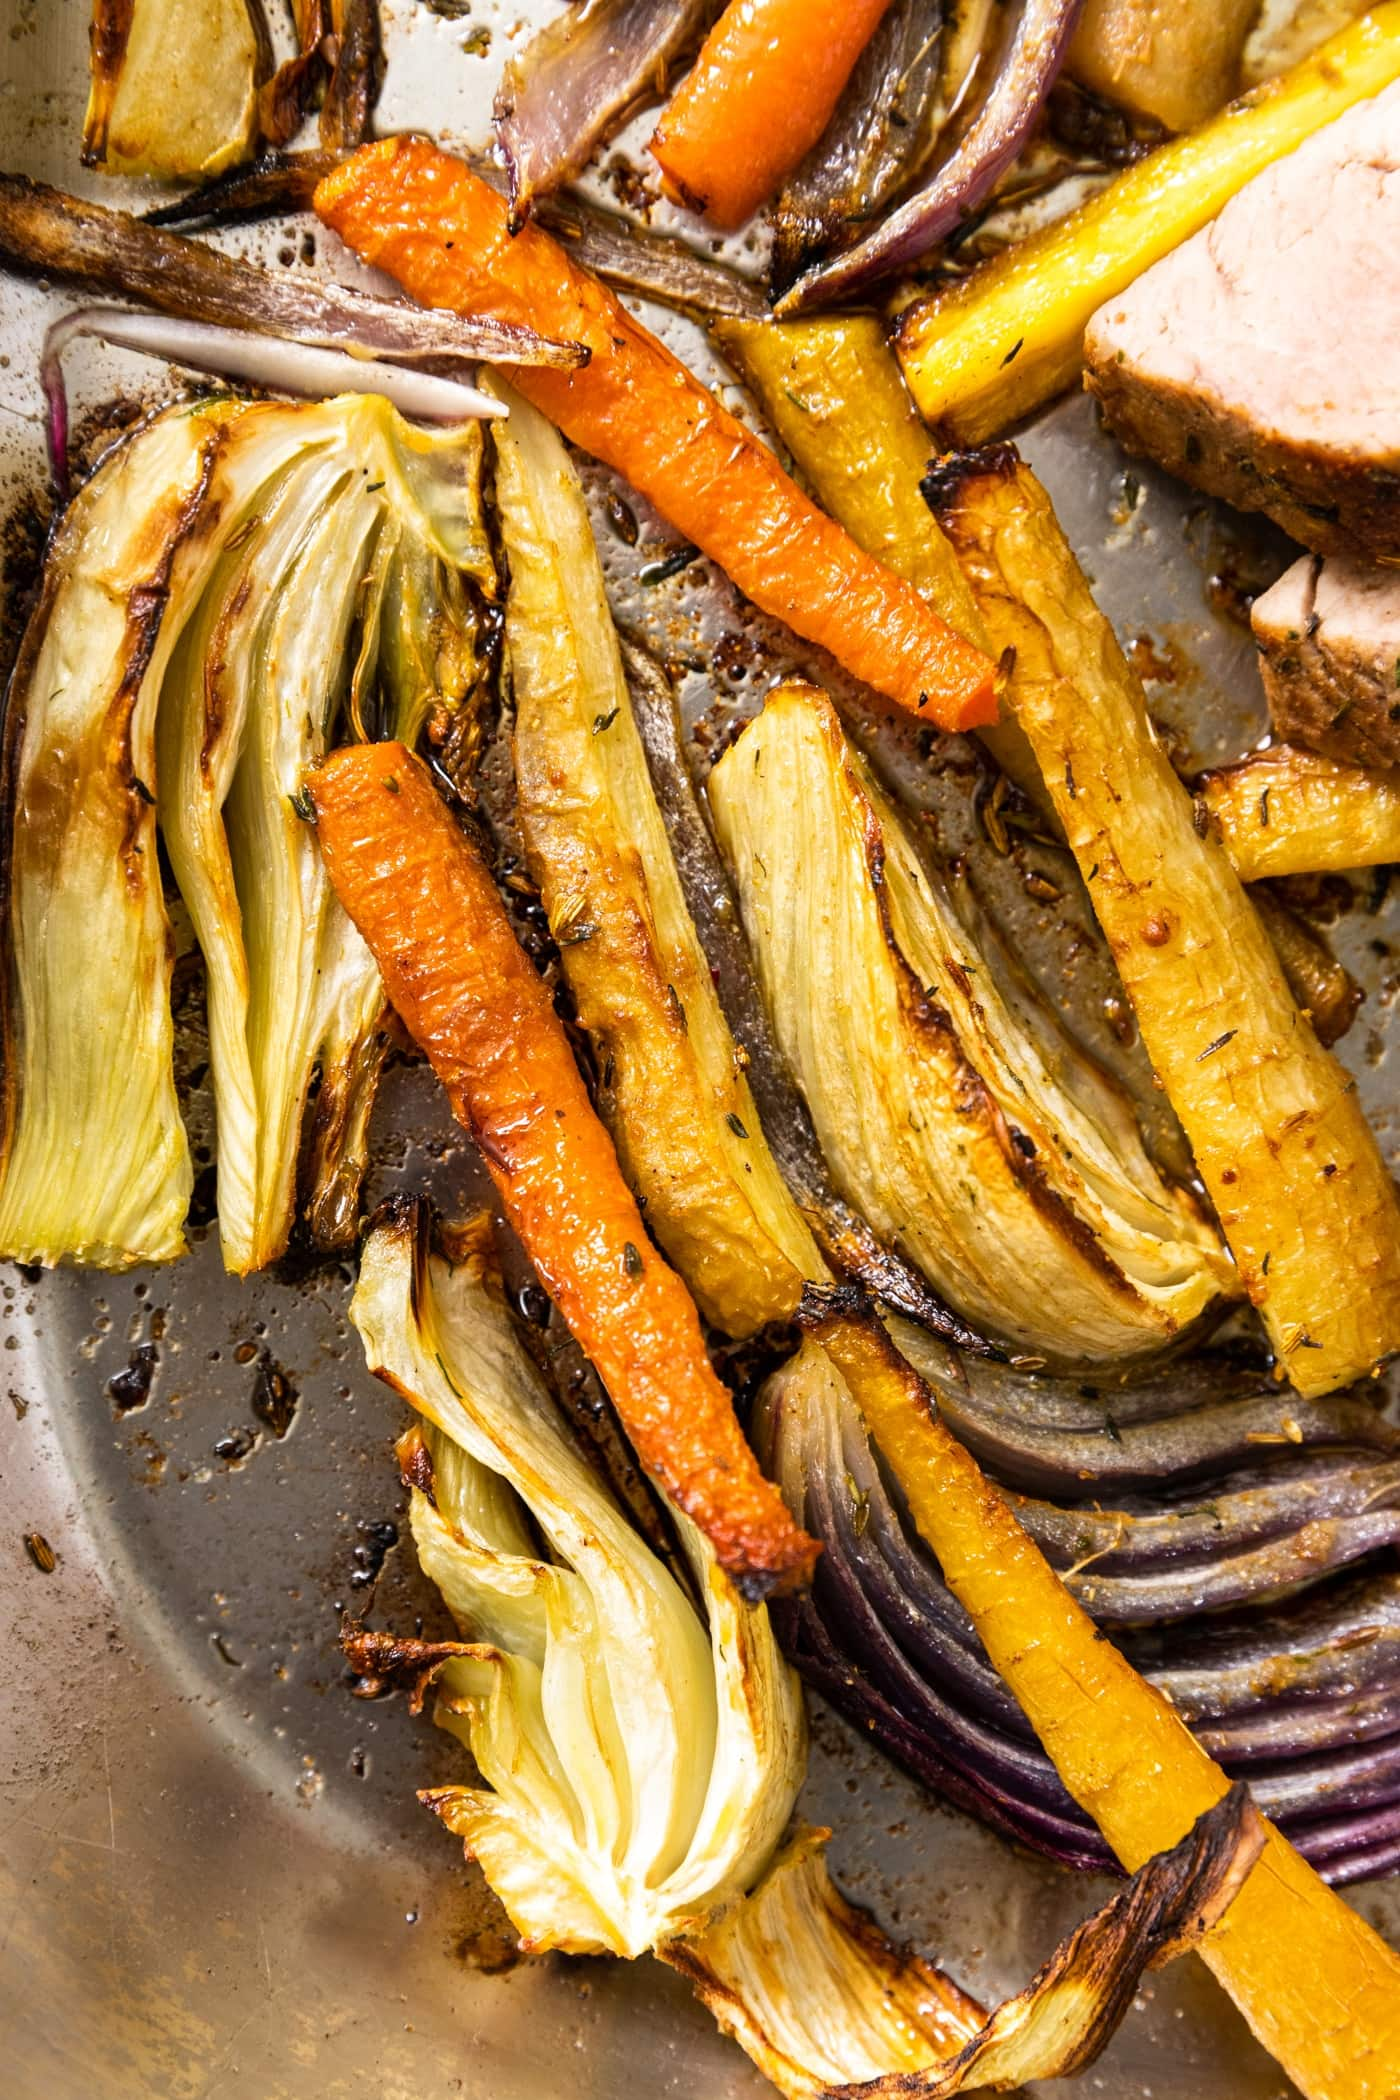 Top down view of roasted carrots and slices of fennel bulb sitting in roasting pan